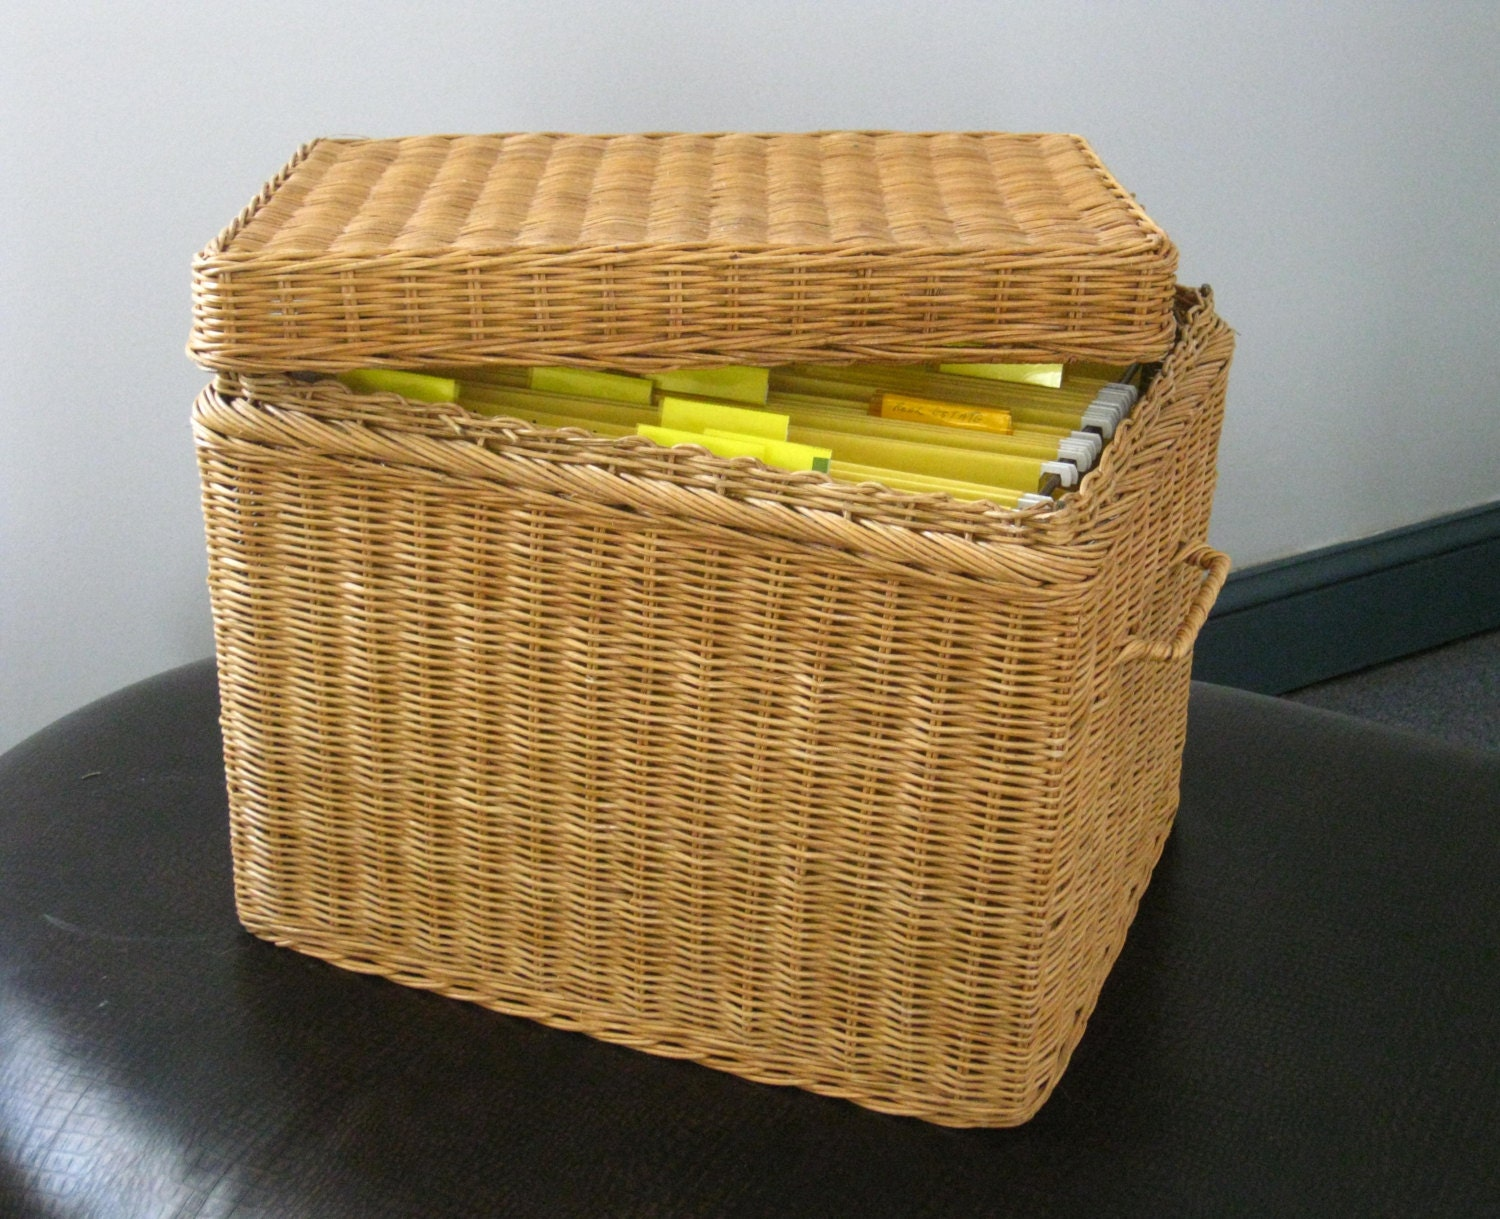 Vintage Rattan File Basket Wicker Box With Lid Home Office